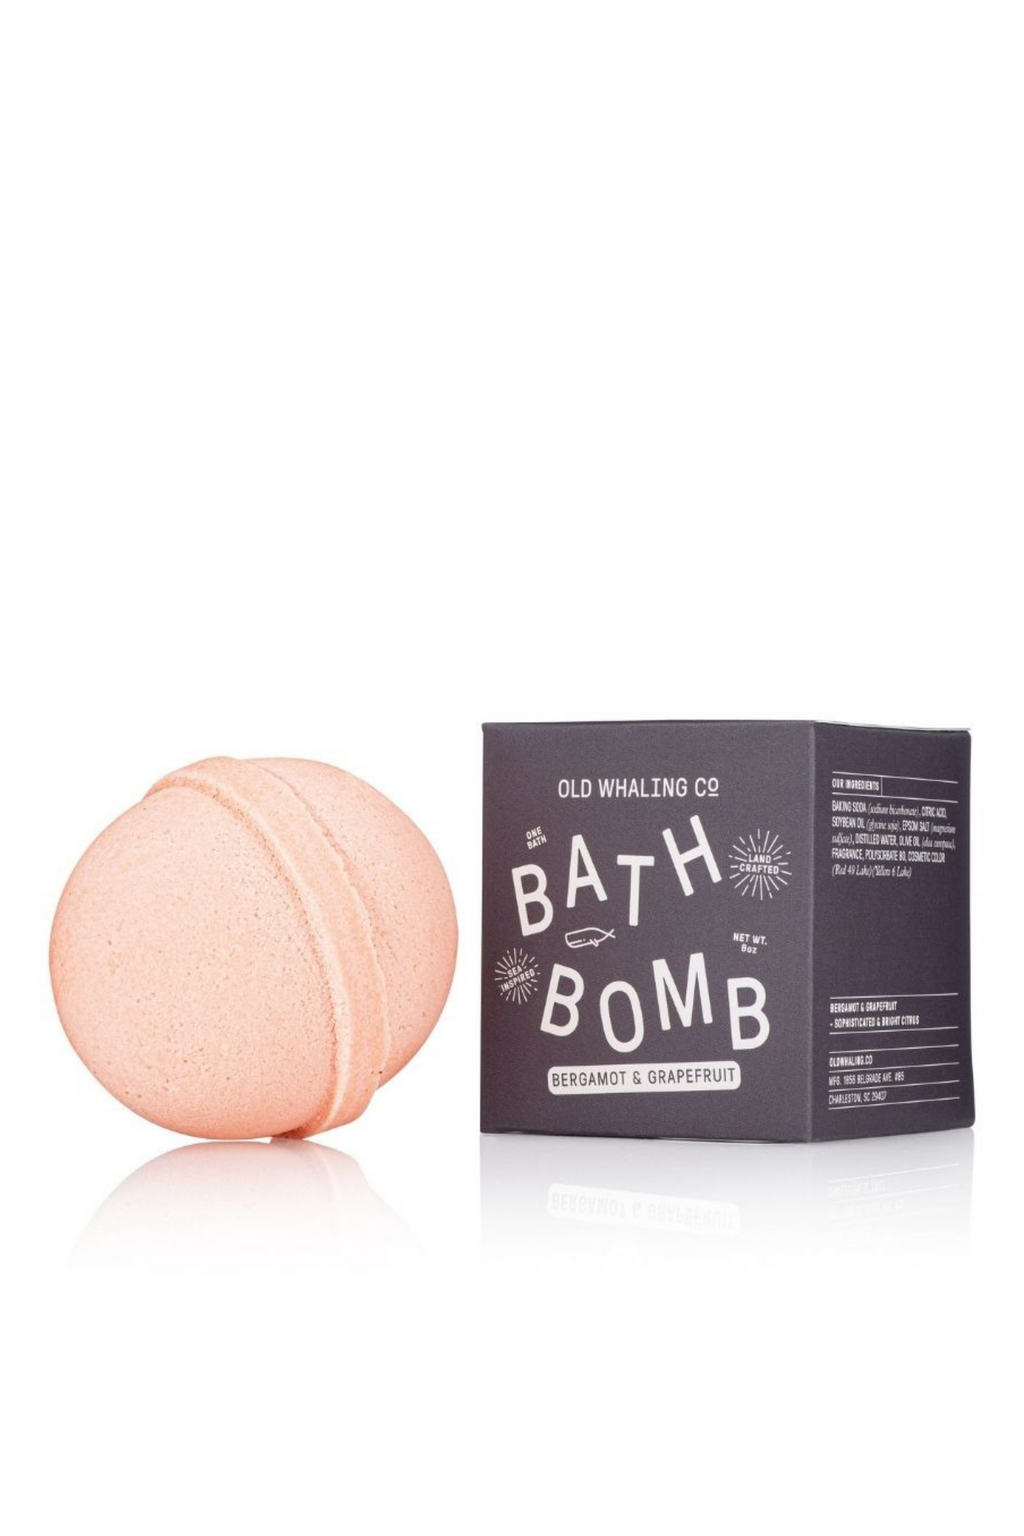 Bergamot + Grapefruit Bath Bomb